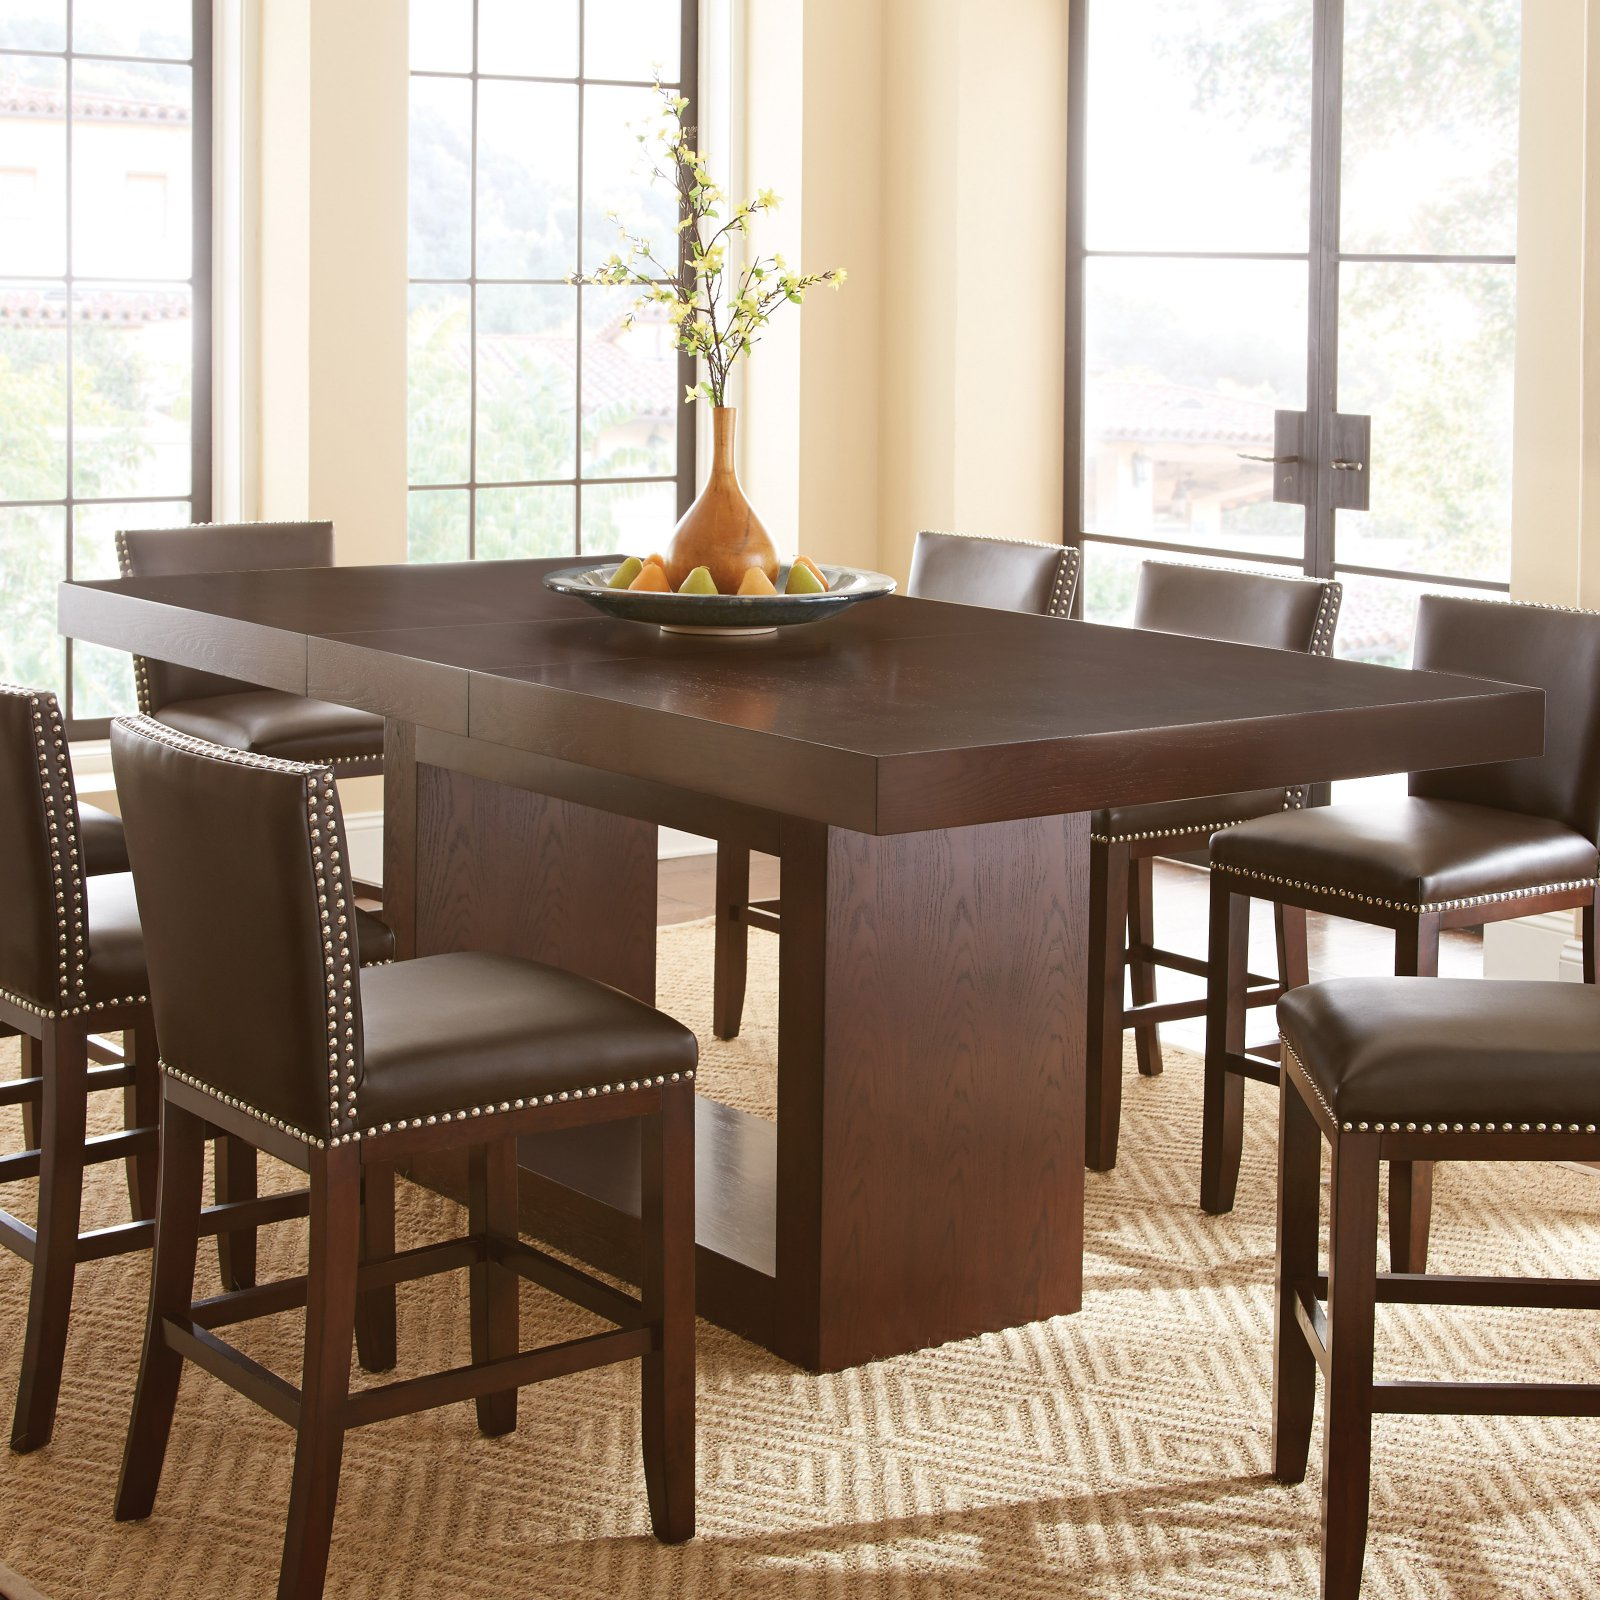 Steve Silver Antonio Counter Height Dining Table